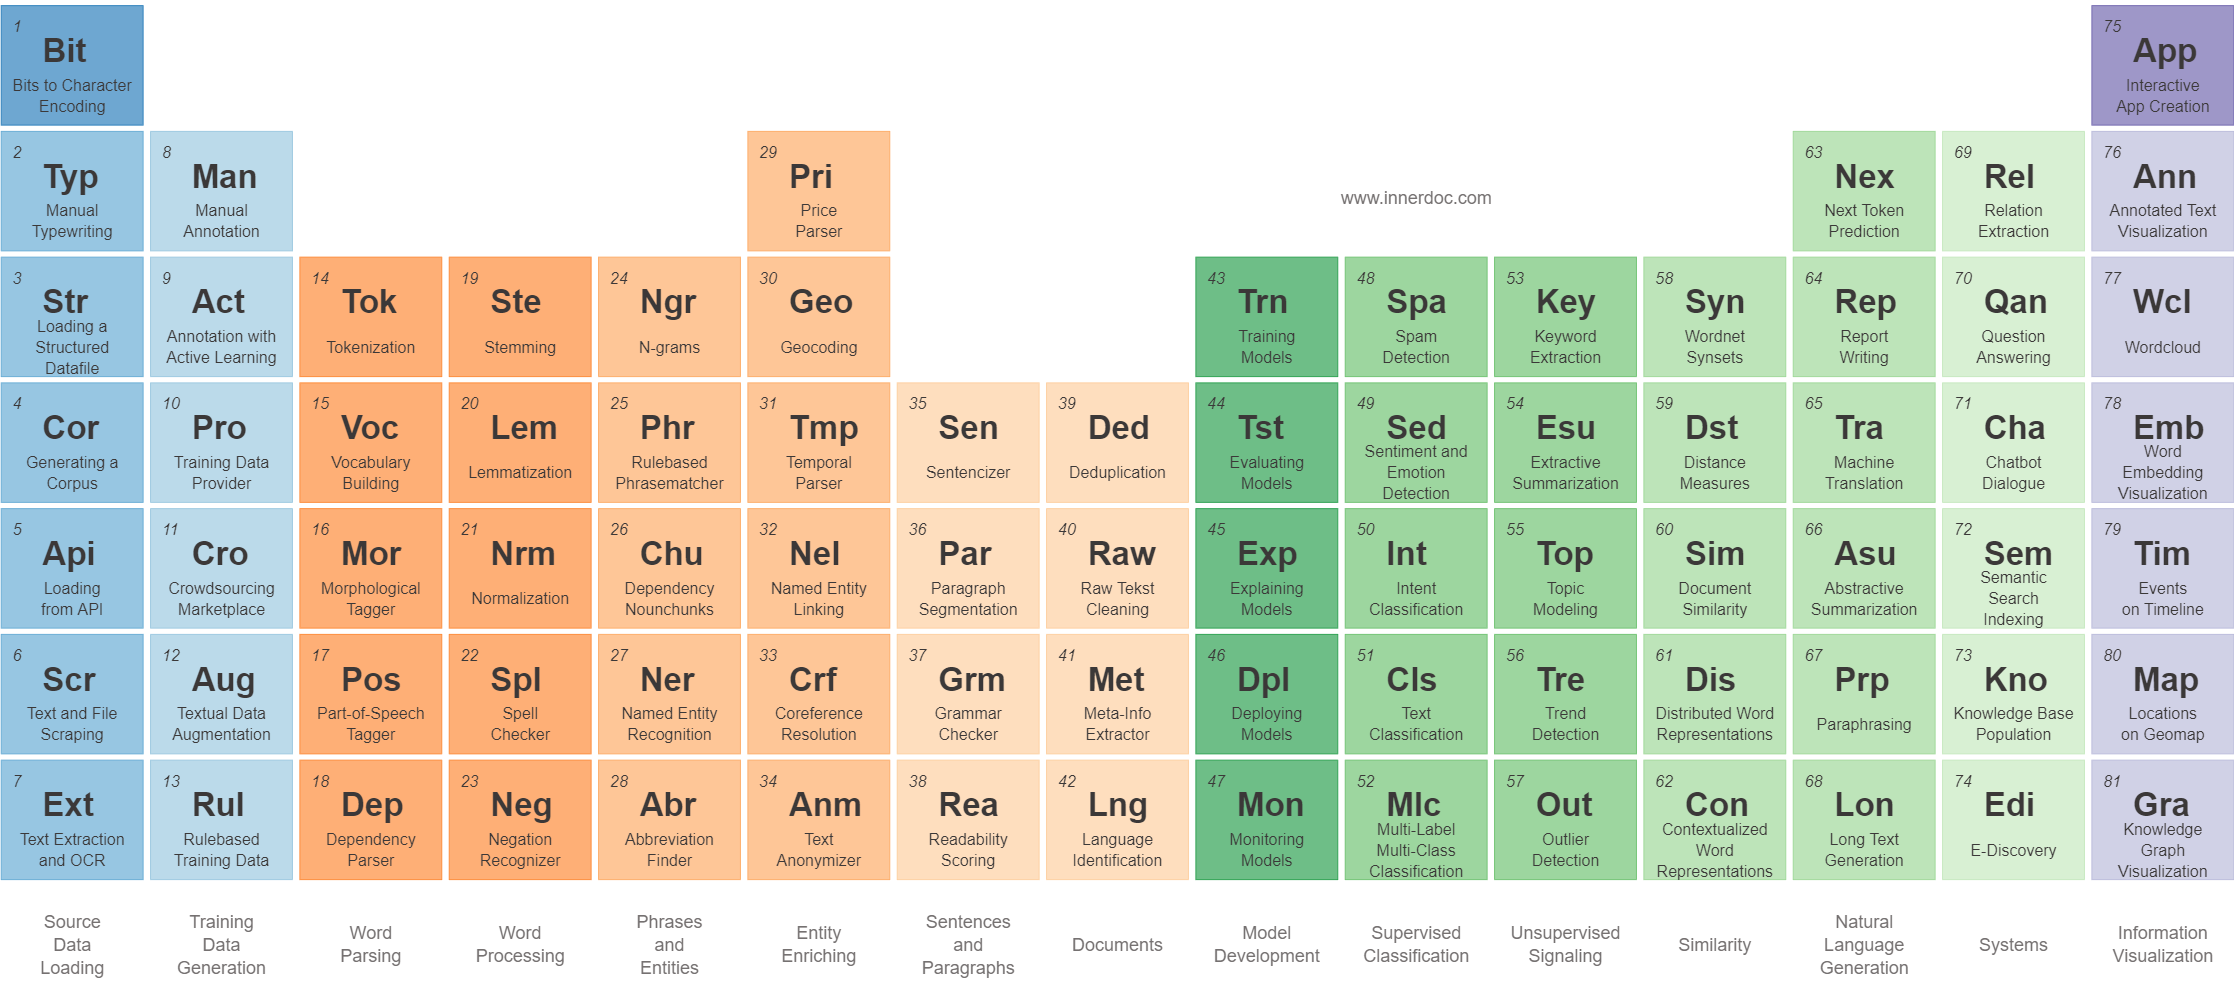 Periodic Table of Natural Language Processing Tasks by www.innerdoc.com and created with the Periodic Table Creator